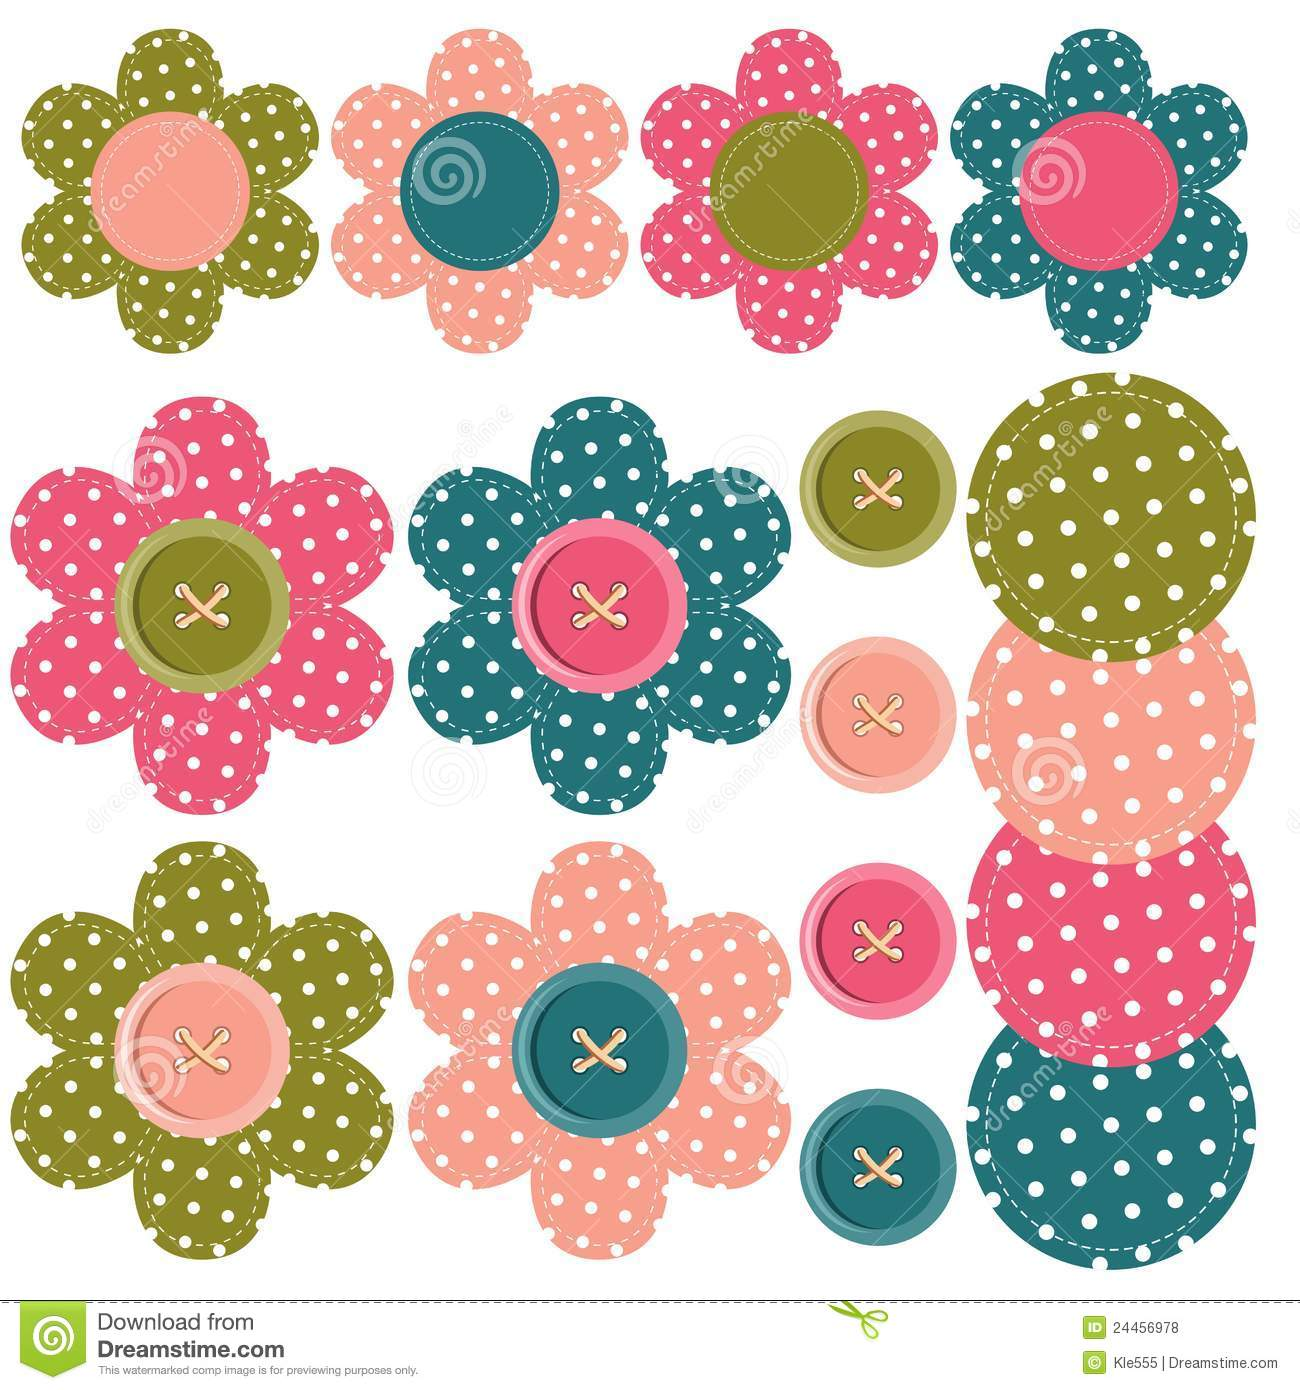 Flower And Butterfly Wall Stickers Set With Scrapbook Flowers And Buttons Stock Illustration